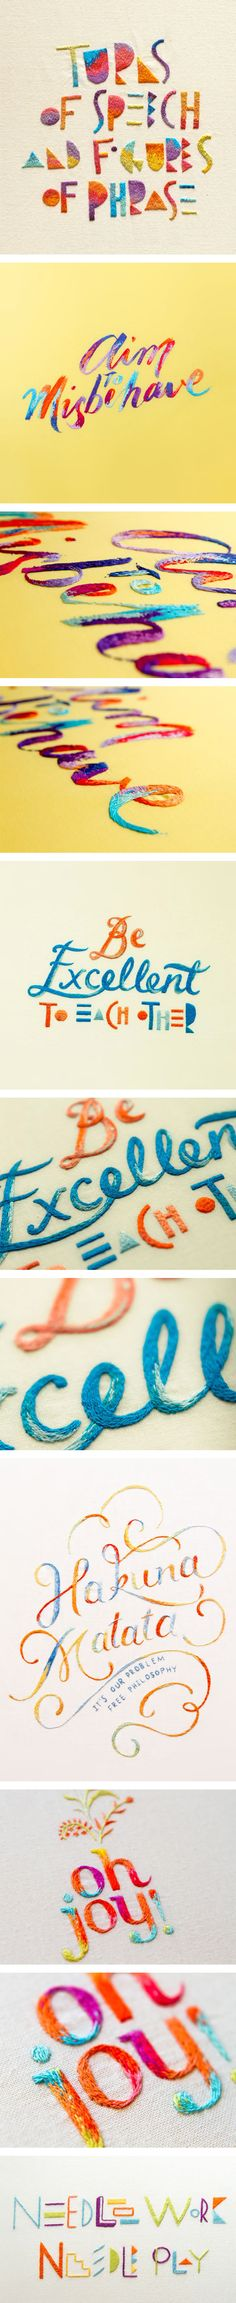 Typographie et broderie : oh ouiii!